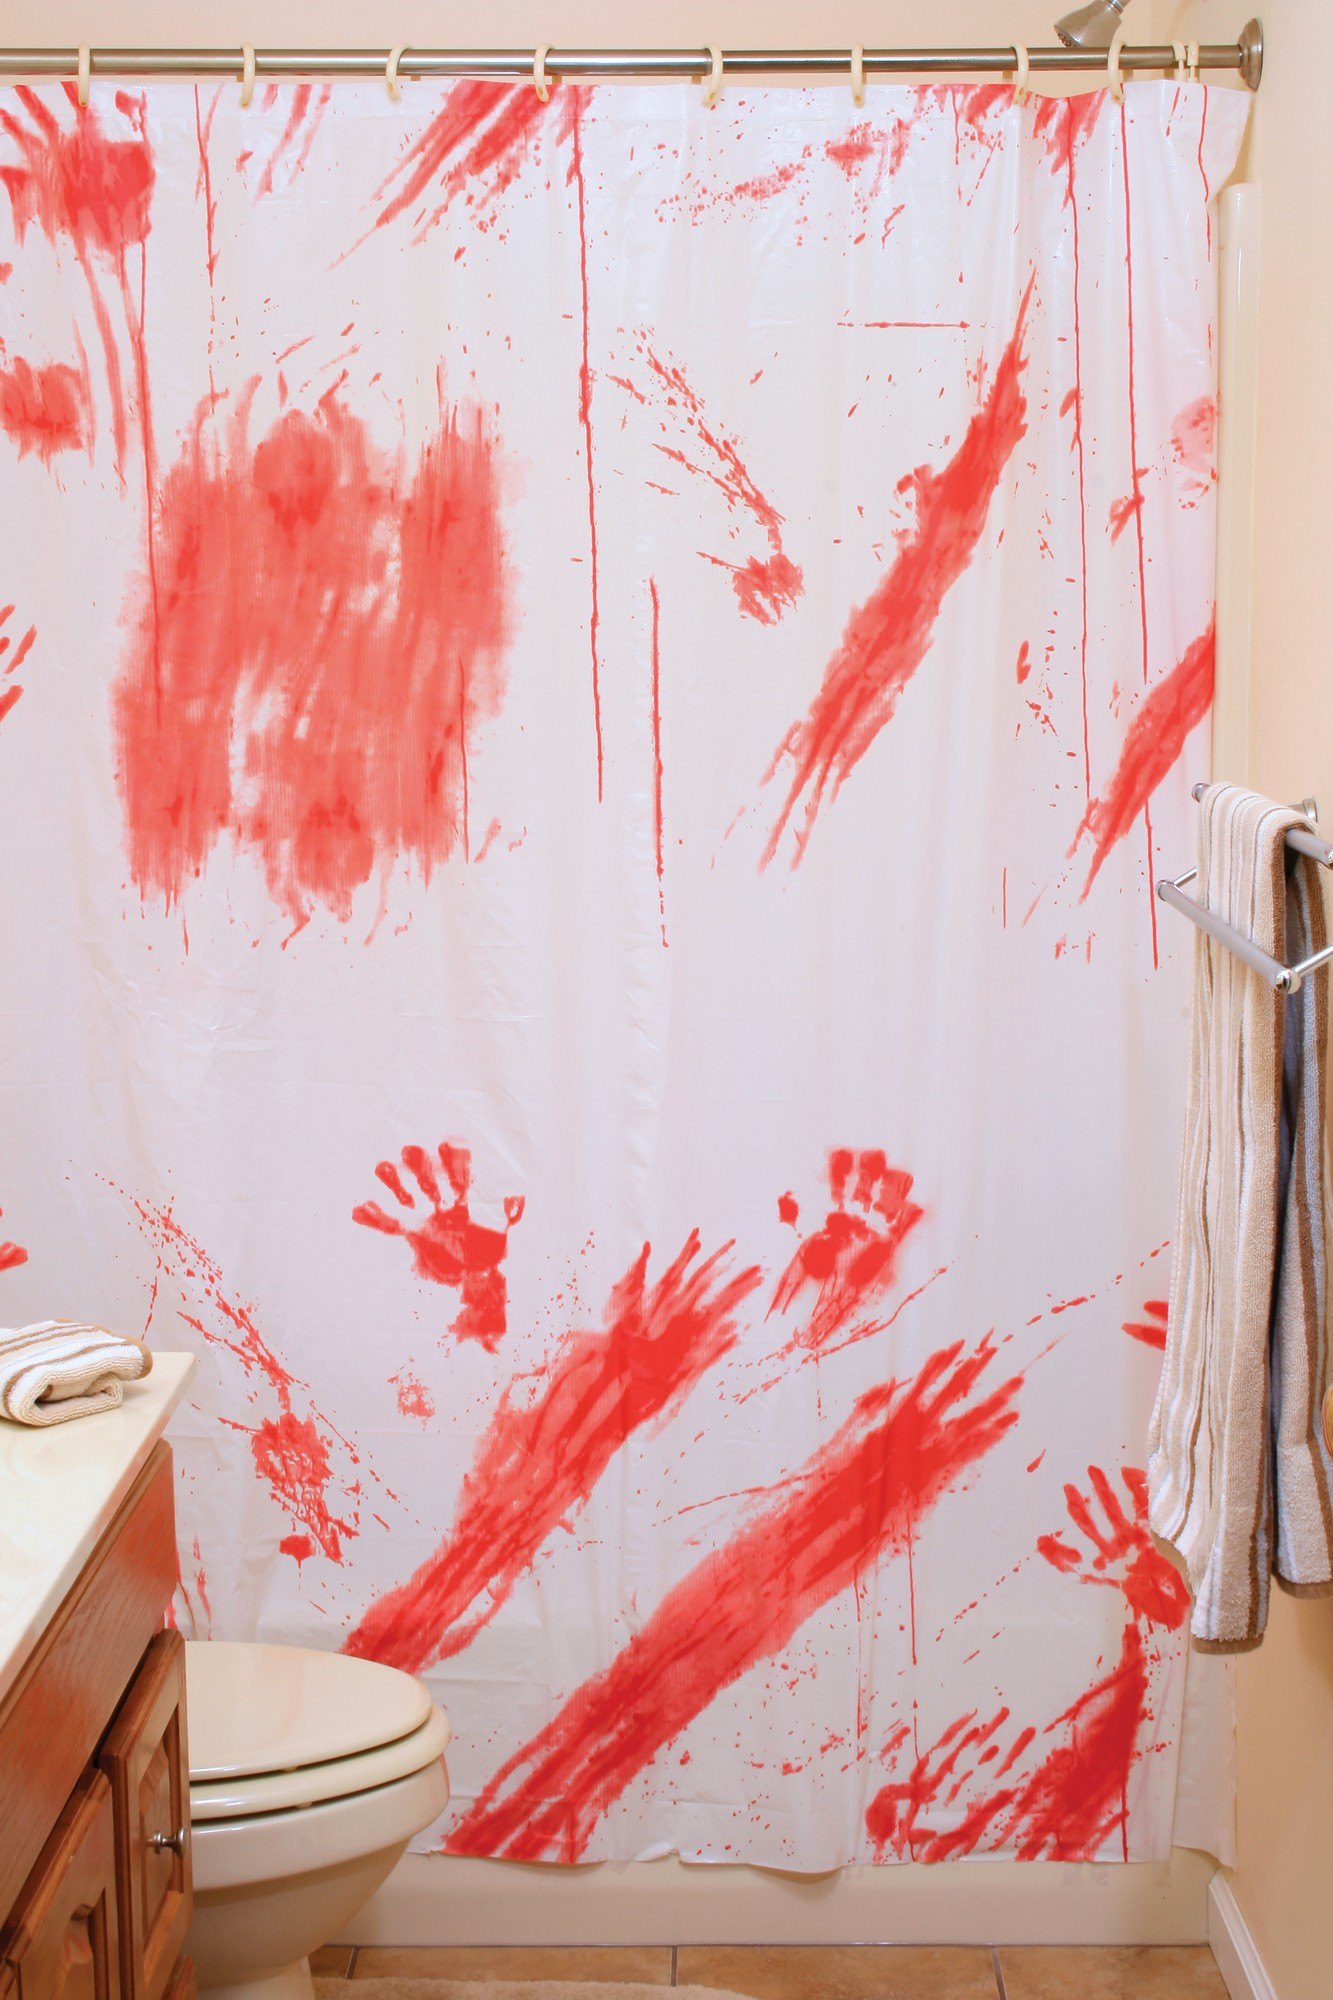 Fun World Bloody Shower Curtain   Walmart.com